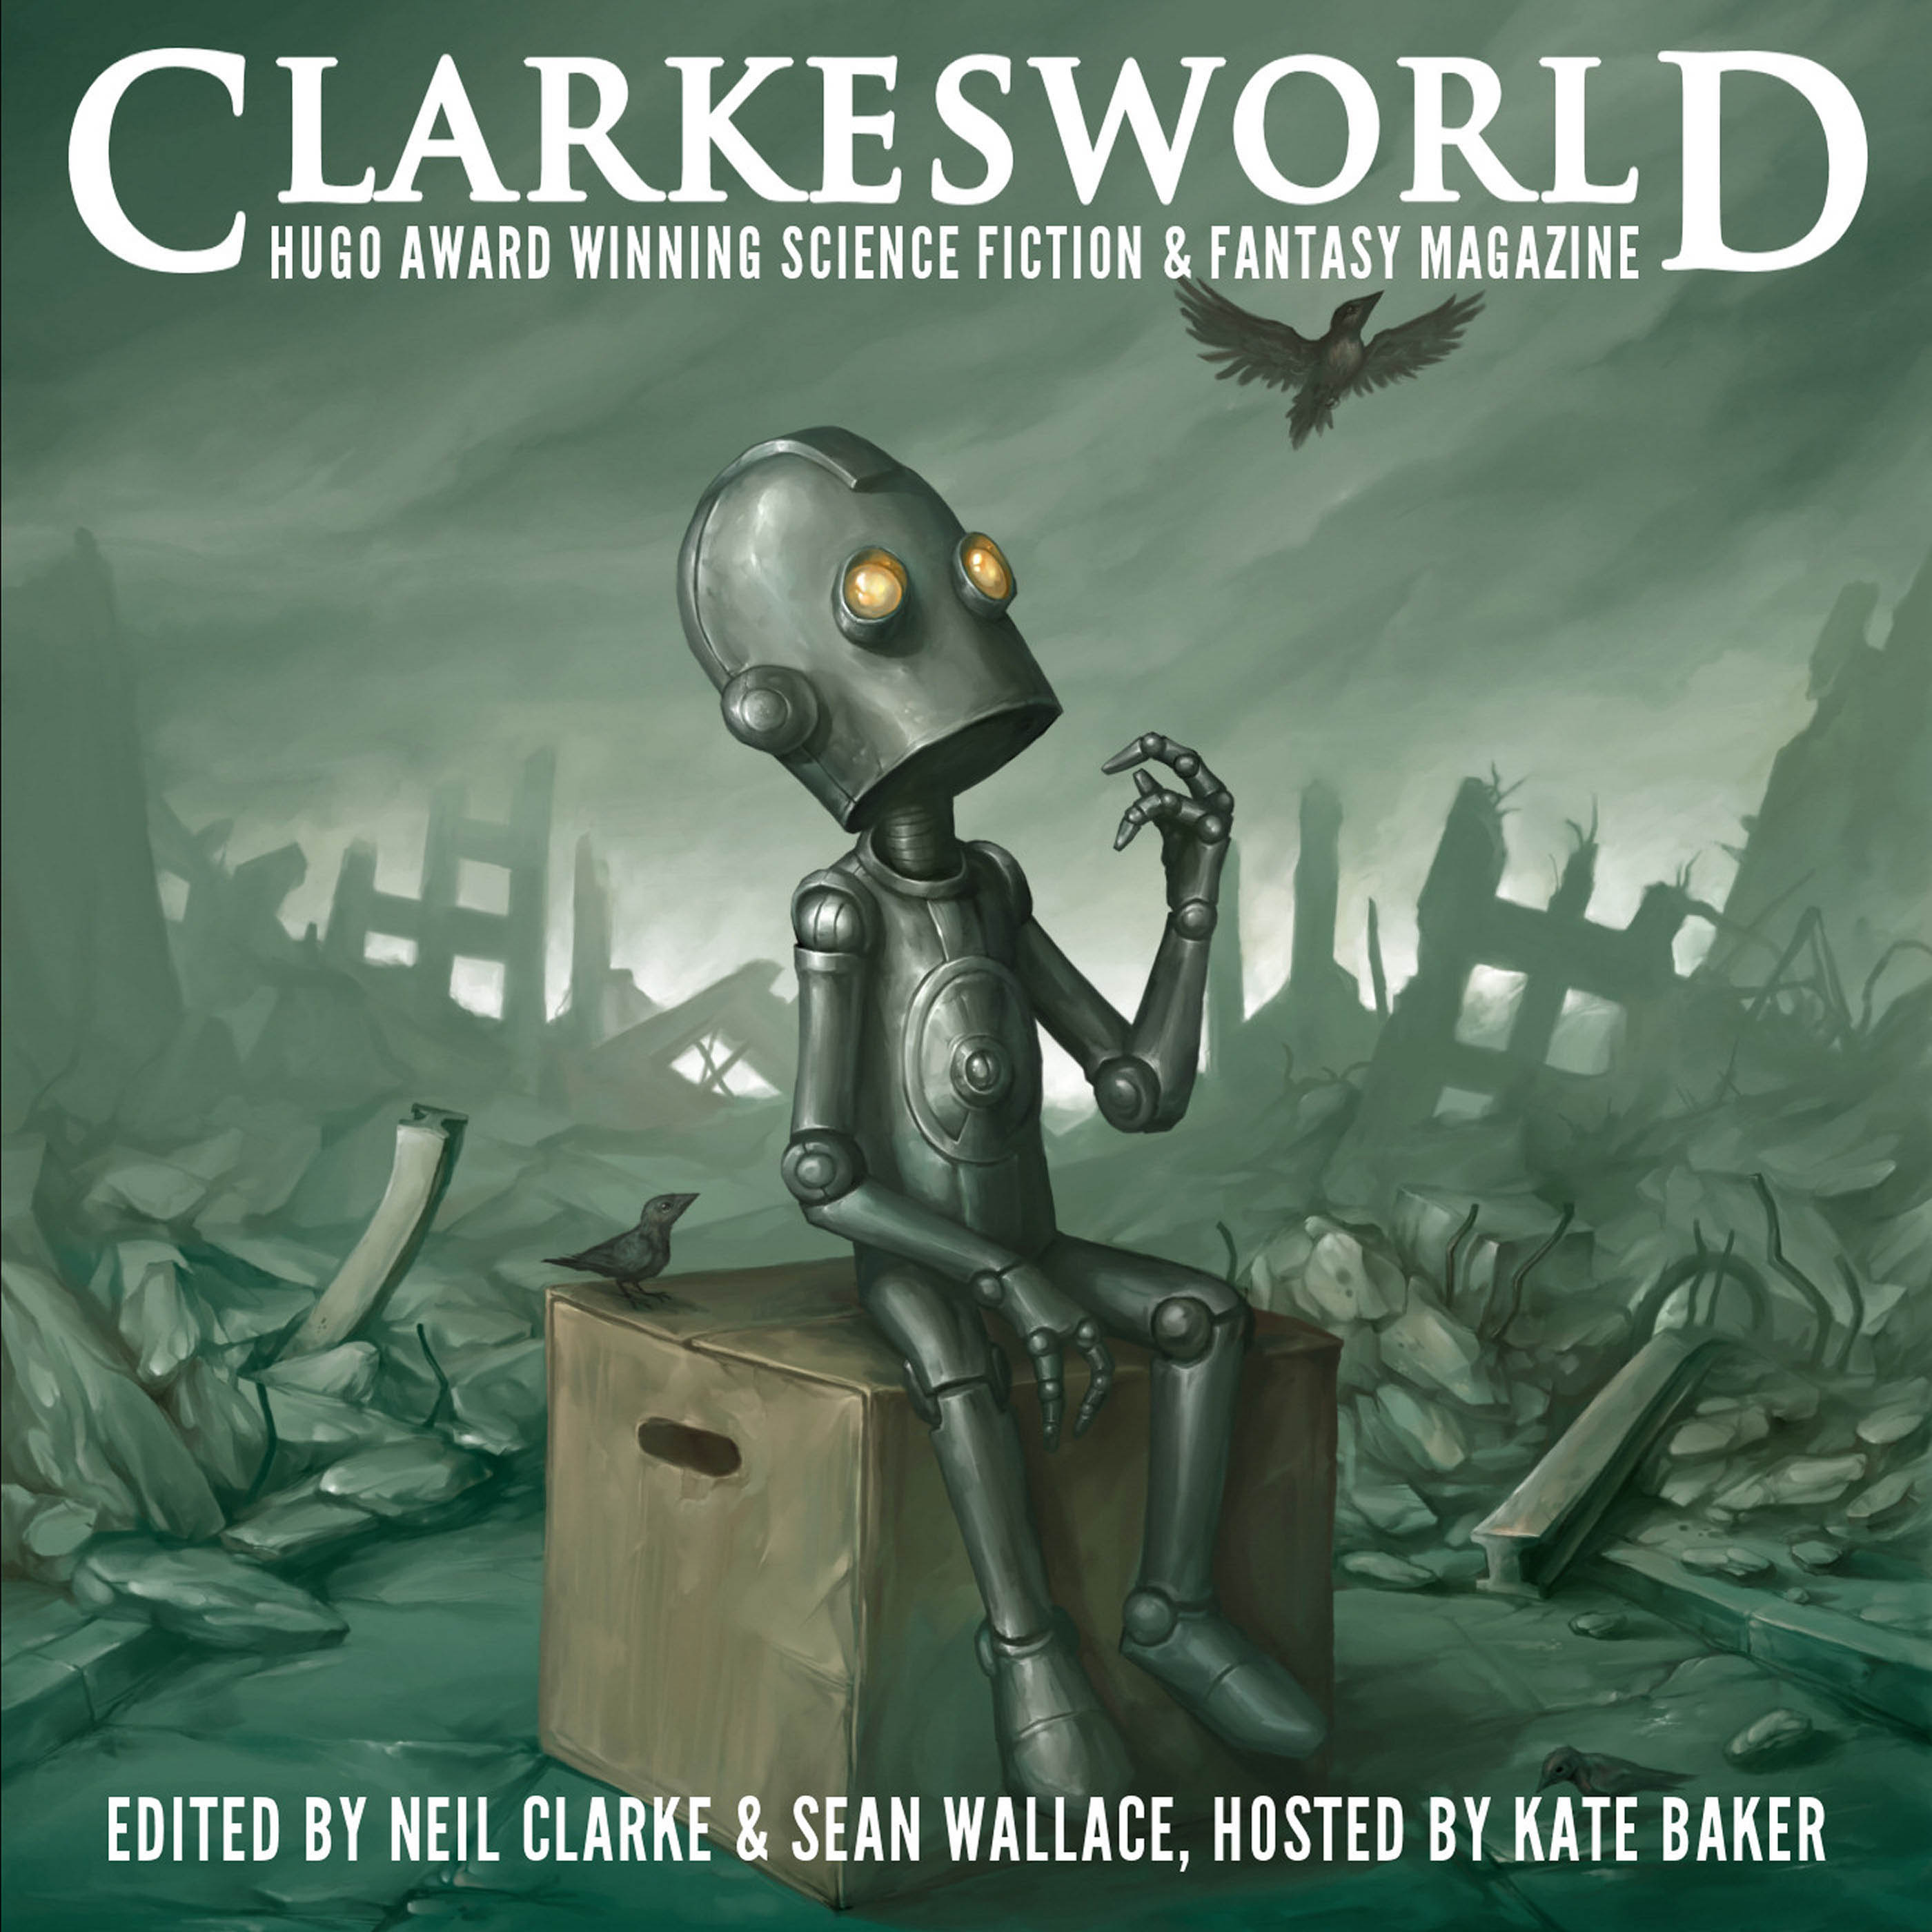 Clarkesworld Magazine - Science Fiction & Fantasy